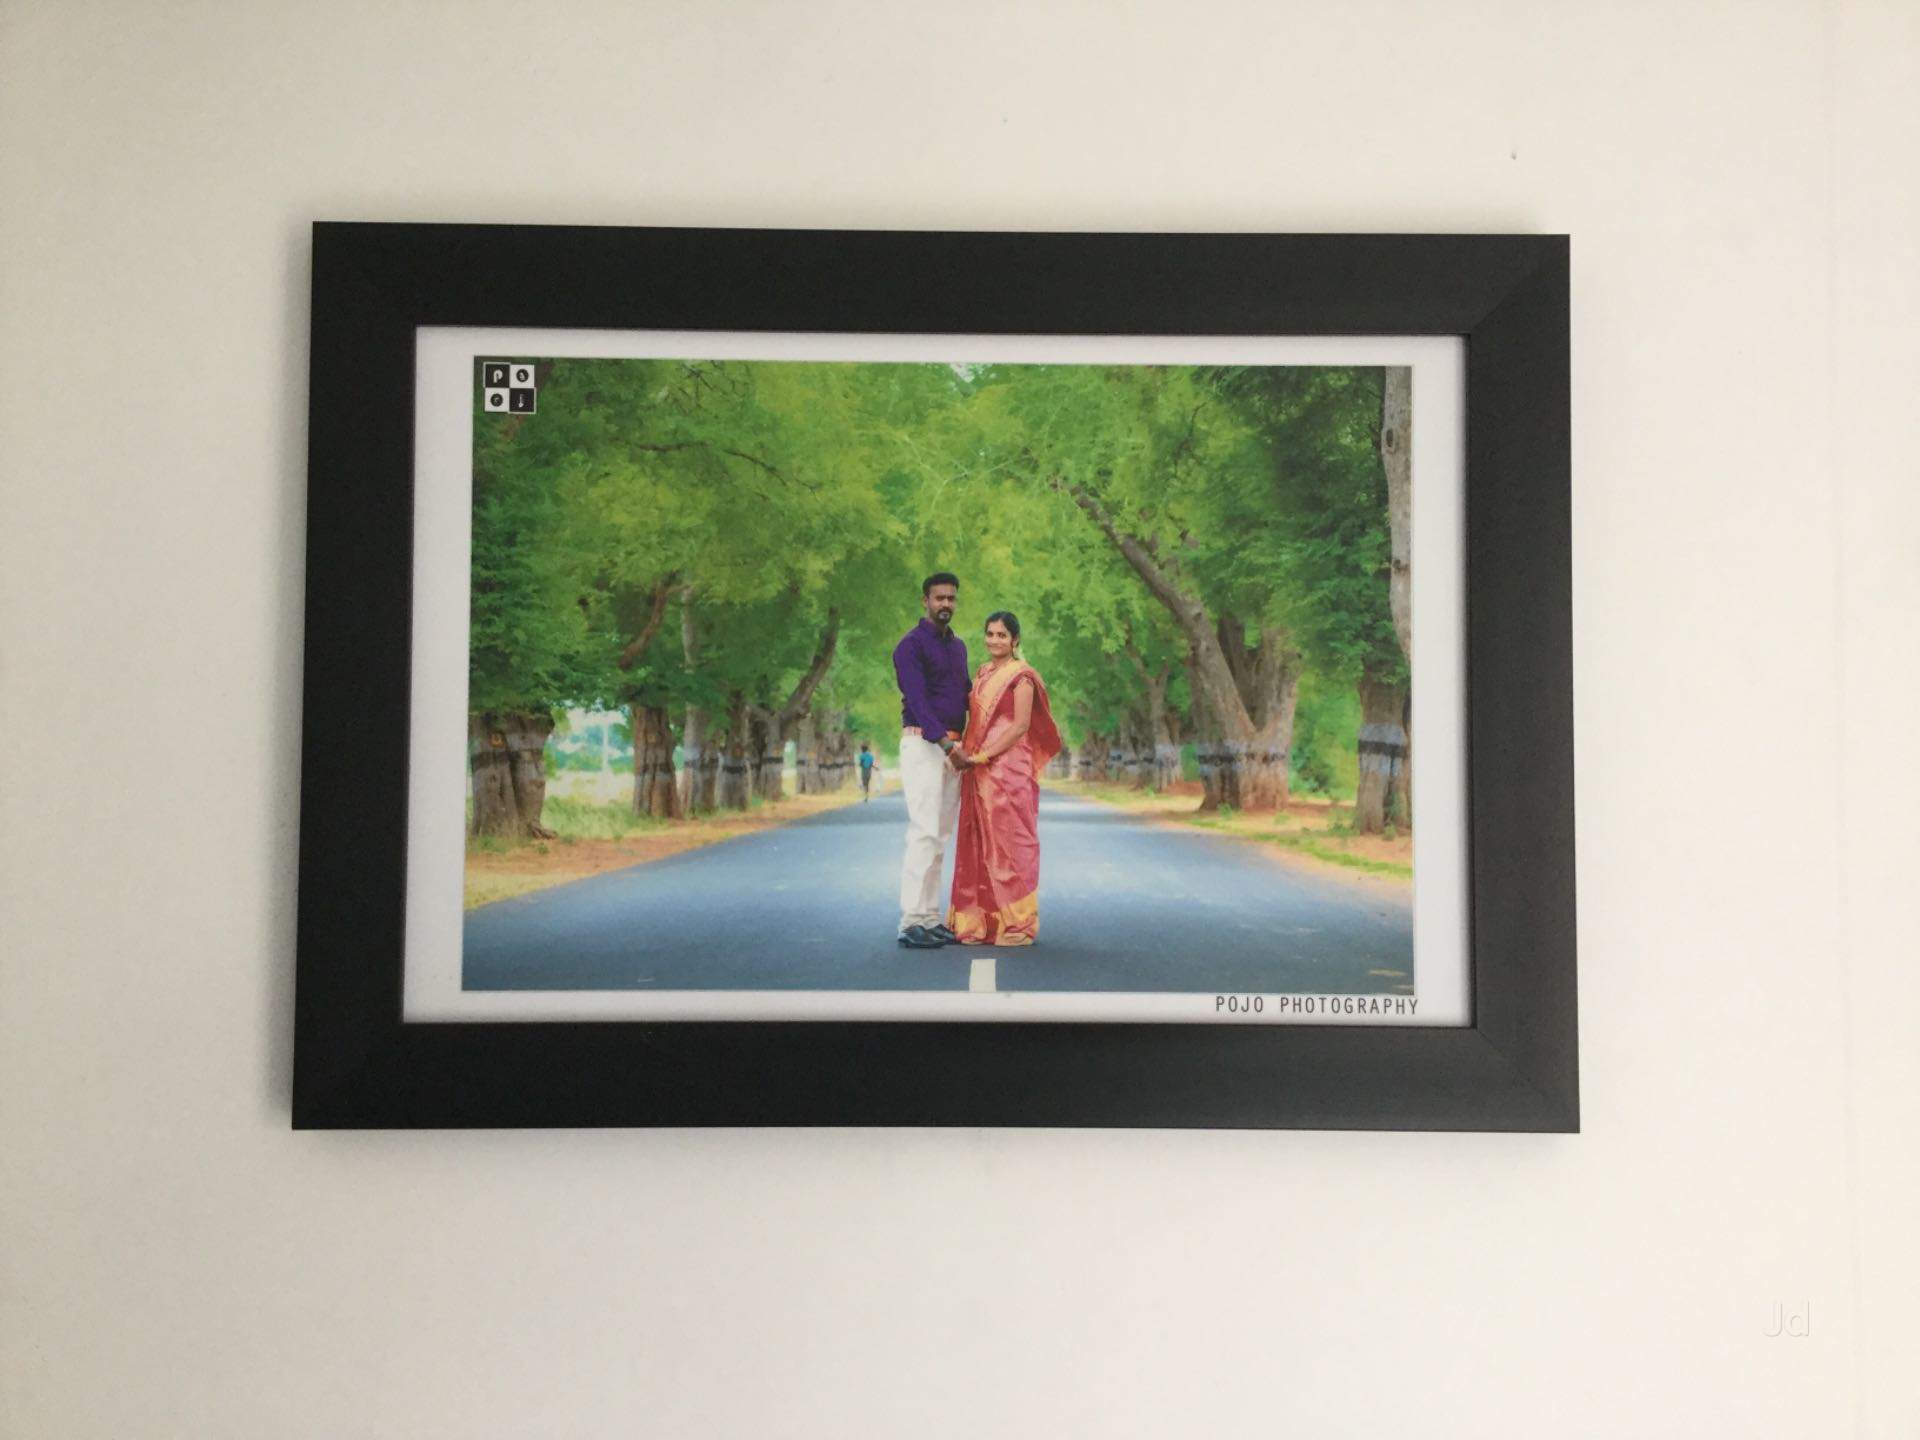 Pojo Photography Photos Padur Chennai  Pictures Images Gallery 1920x1440